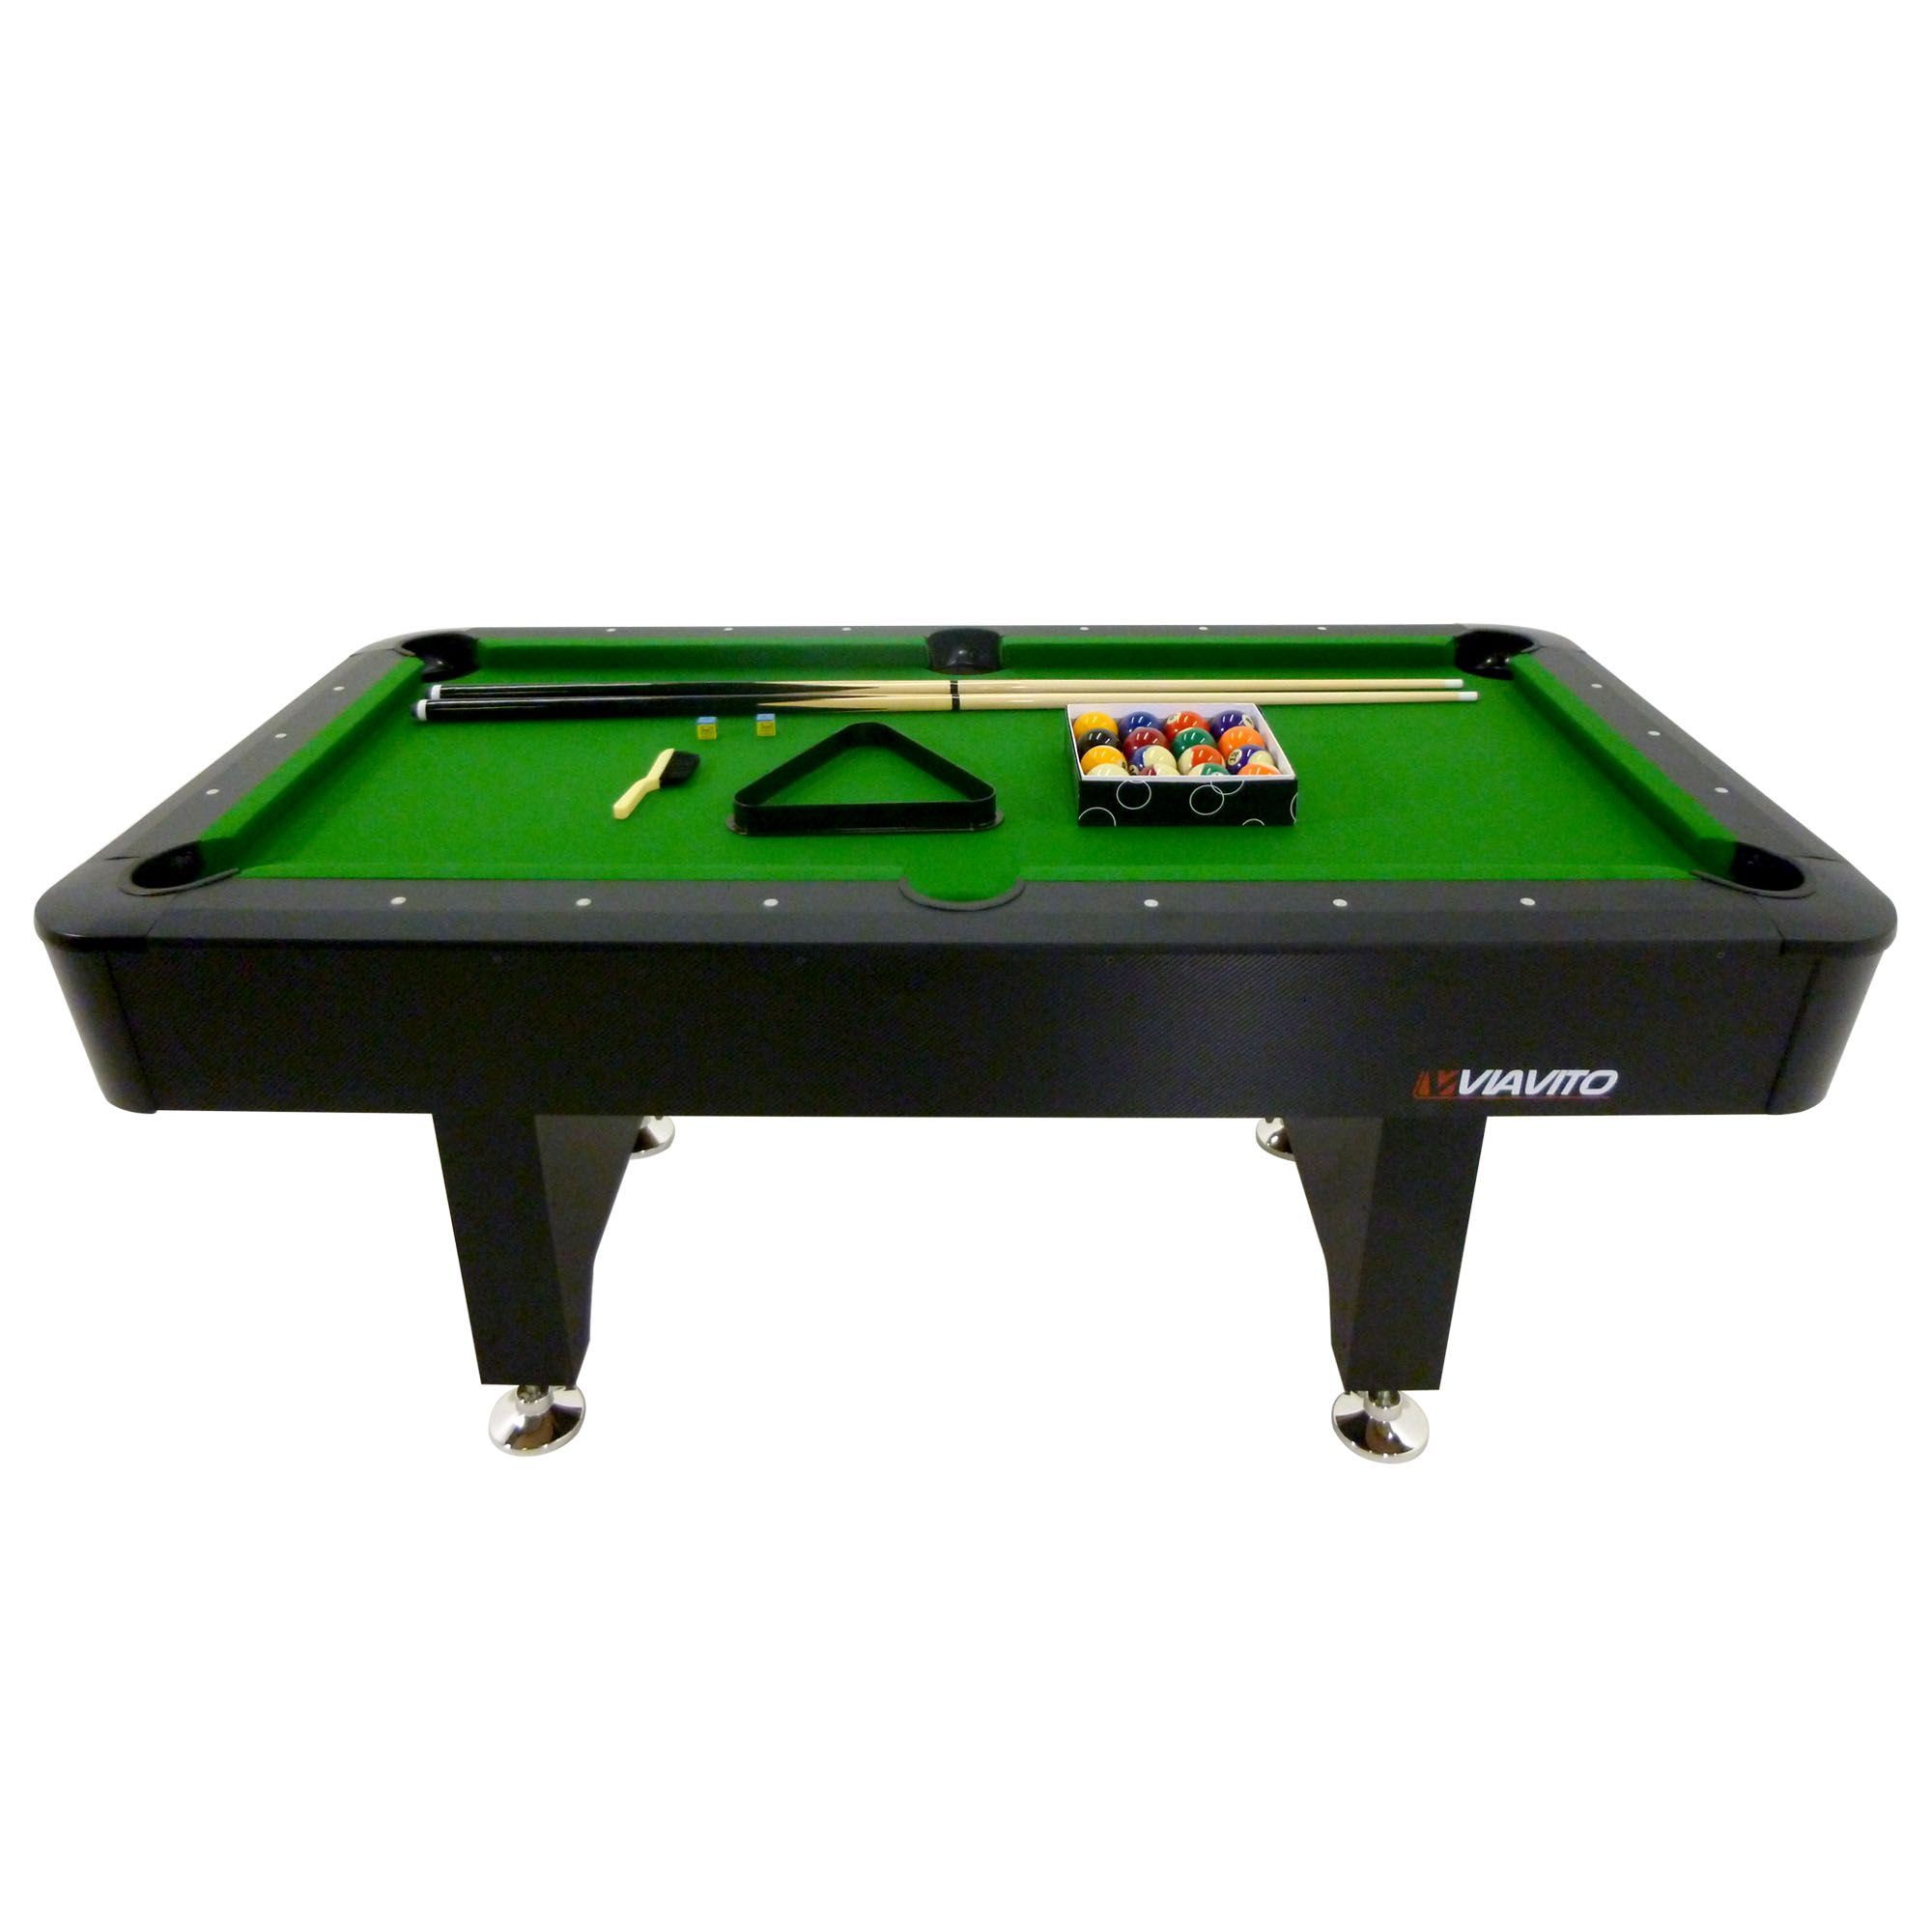 Viavito pt200 6ft pool table for 10 ft pool table for sale